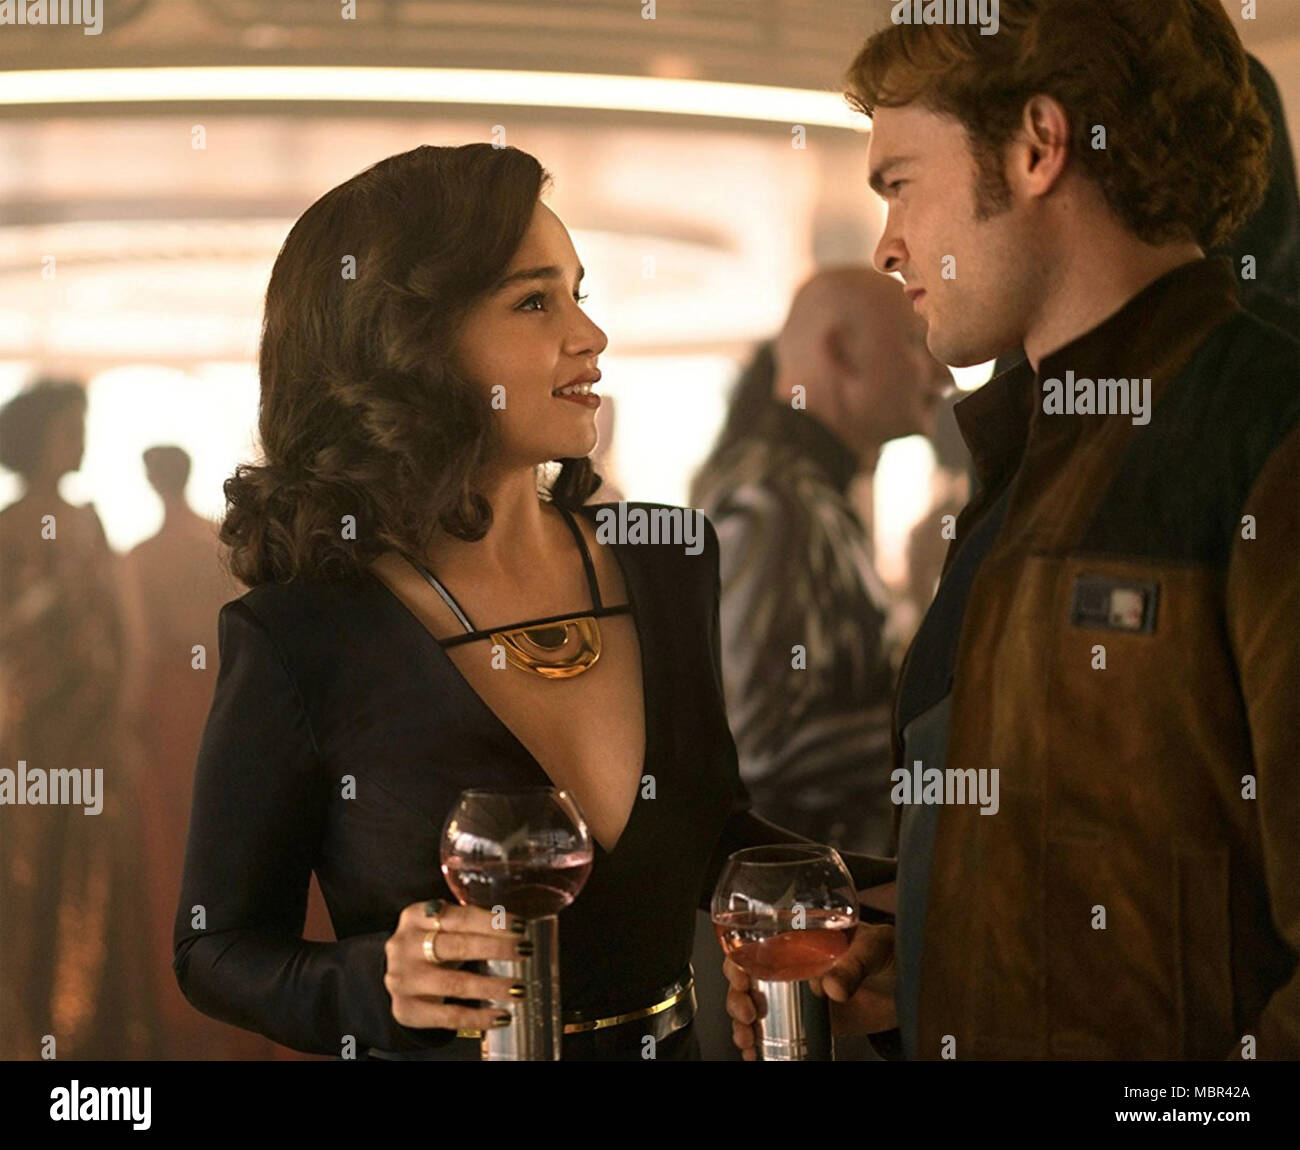 SOLO: A STAR WARS STORY 2018 Lucasfilm production with Emilia Clarke and Alden Ehrenreich - Stock Image